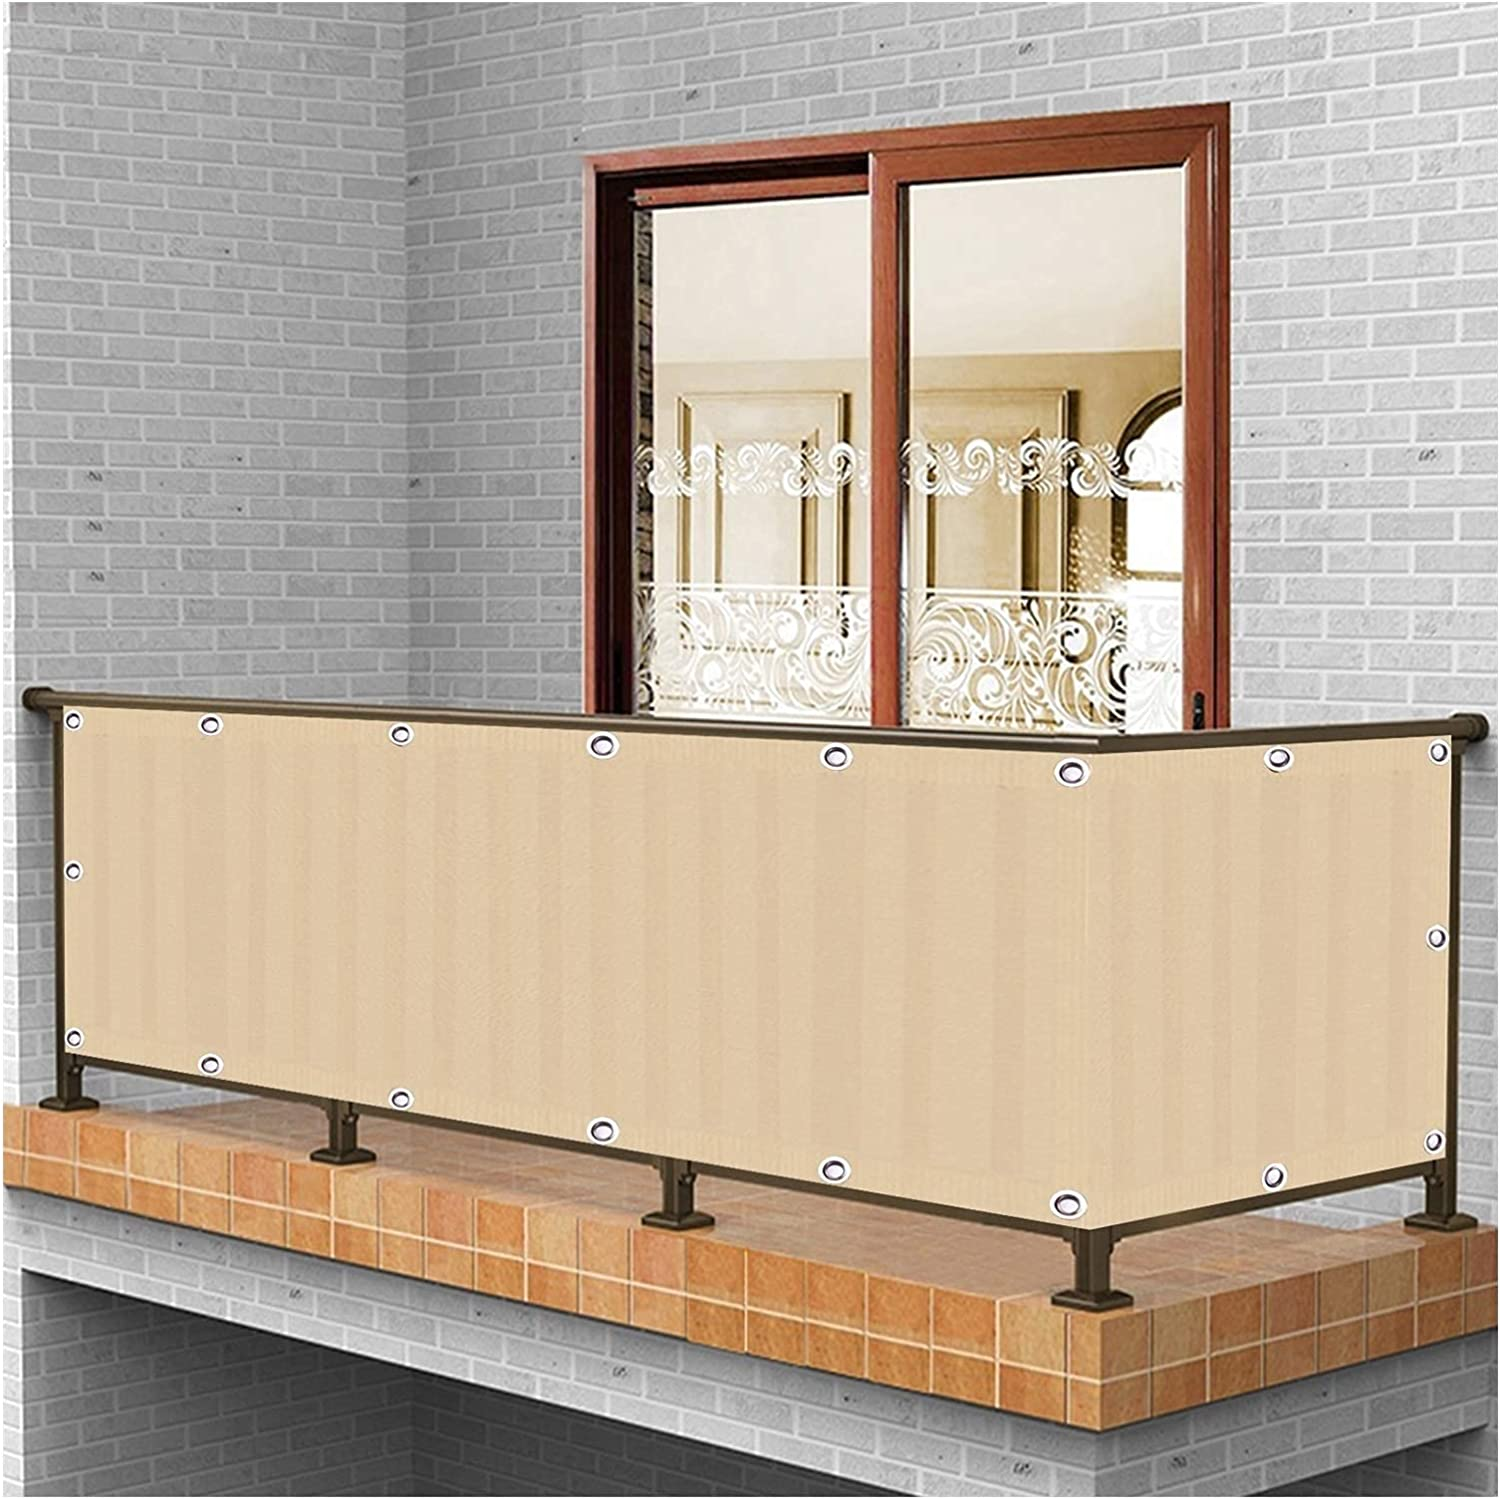 ALBN Balcony Privacy Screen excellence Cover Blo Gifts for Protection 85%